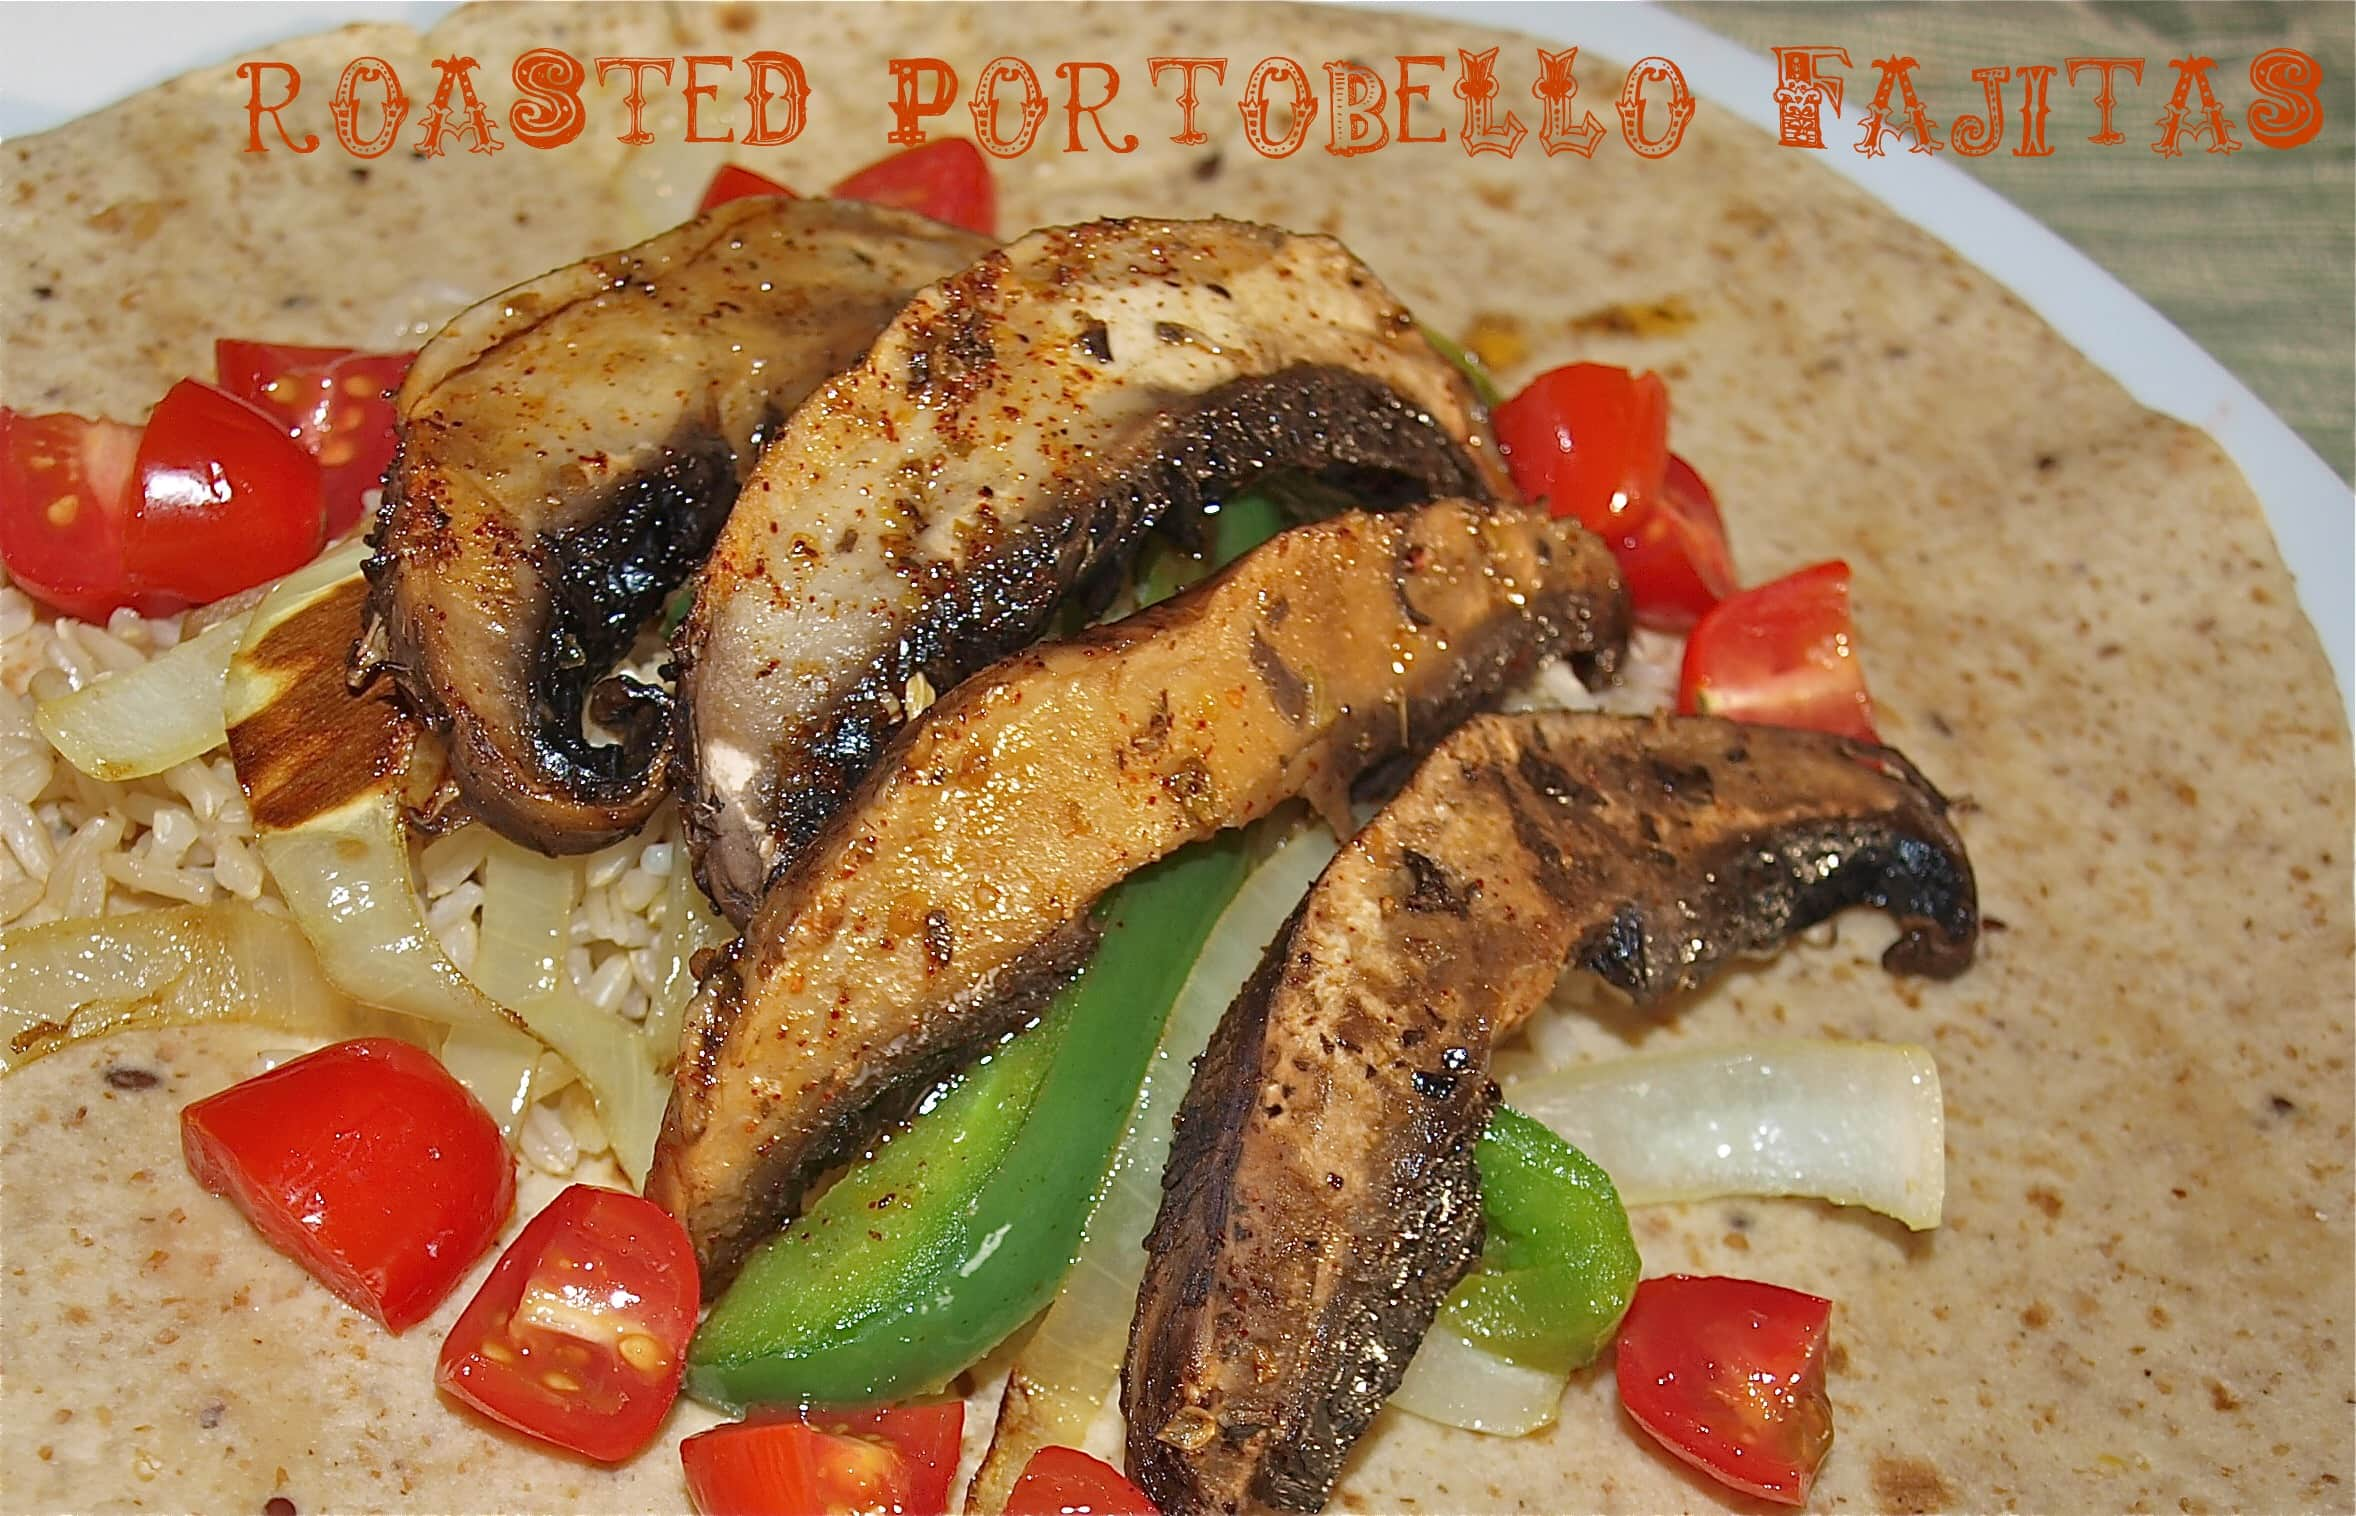 These Roasted Portobello Fajitas are my husband's favorite vegetarian meal! Perfect recipe for Meatless Monday! It's also a quick and easy weeknight recipe.